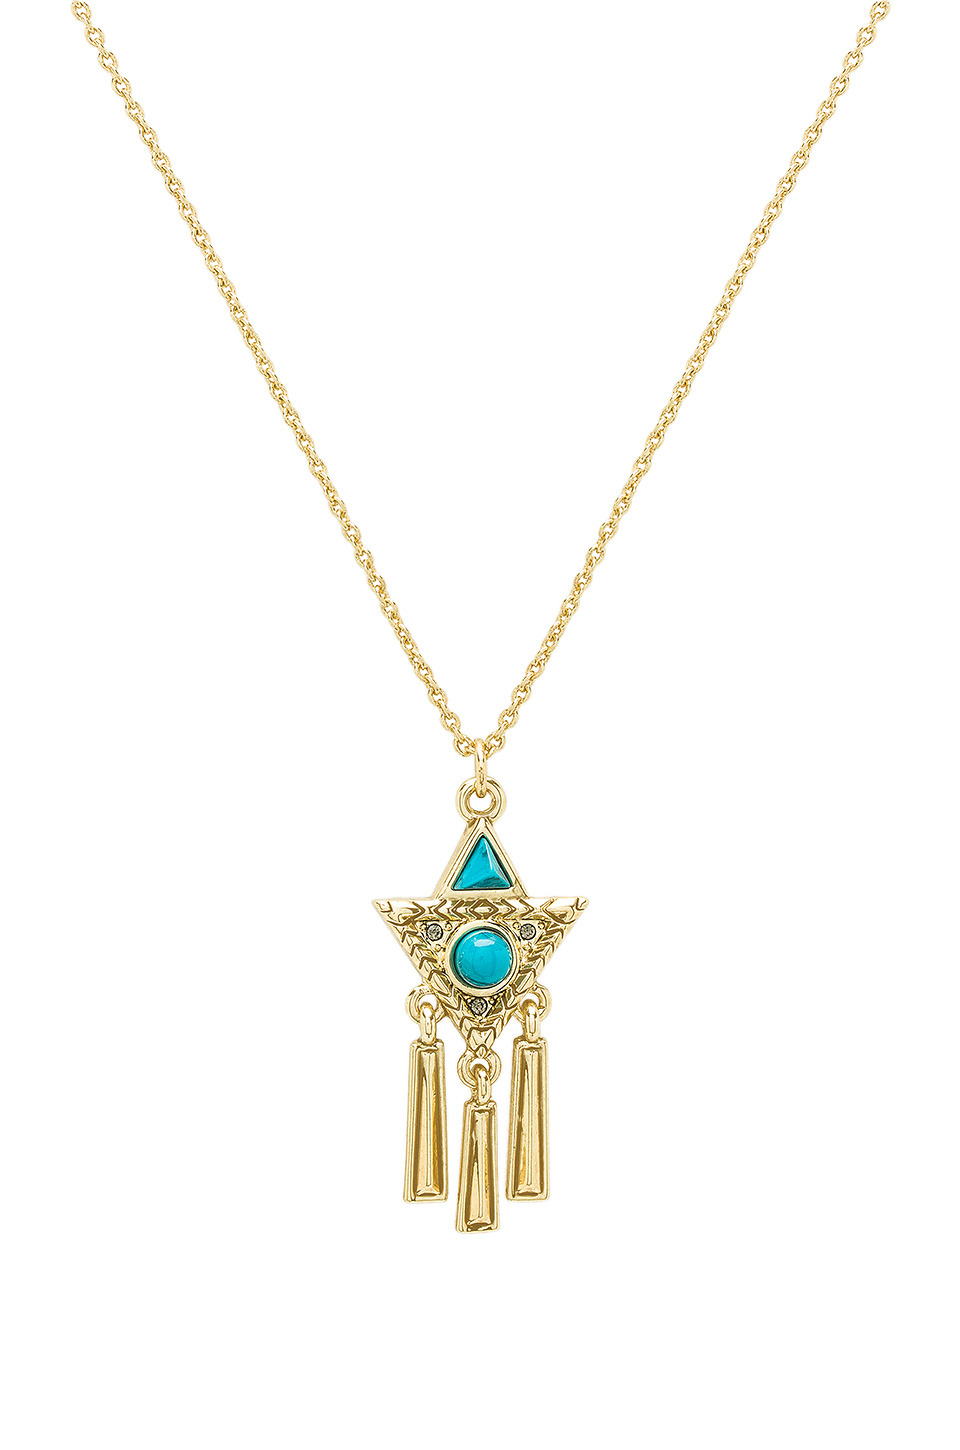 House of Harlow 1960 X Durango Triangle Necklace in Gold & Turquoise